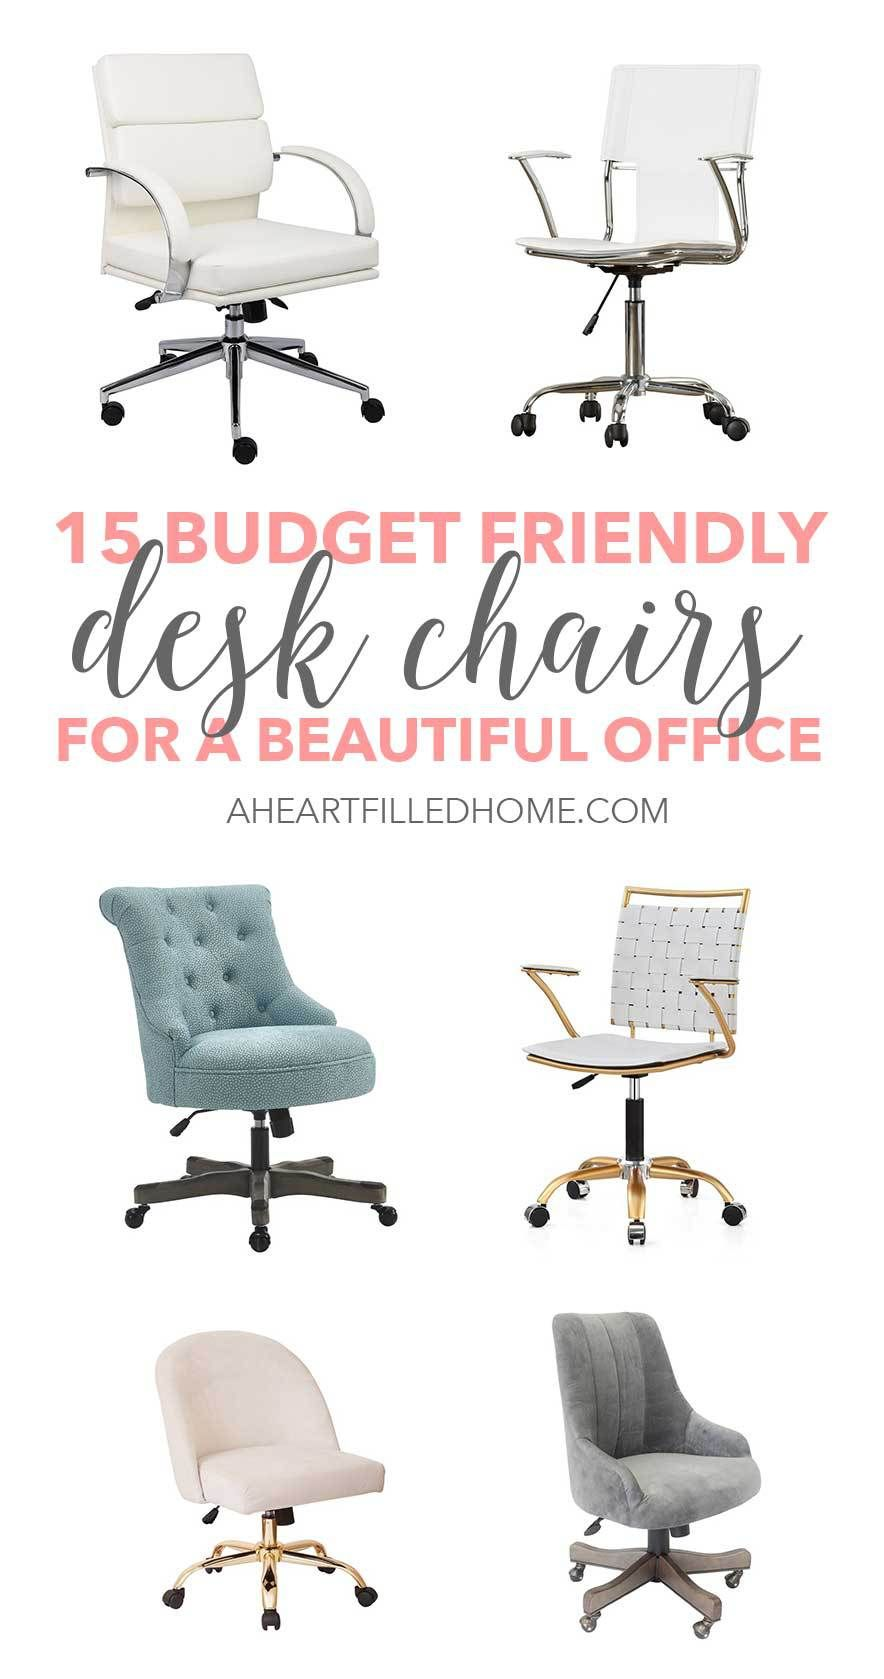 8 Budget Friendly Desk Chairs For A Beautiful Office - A Heart